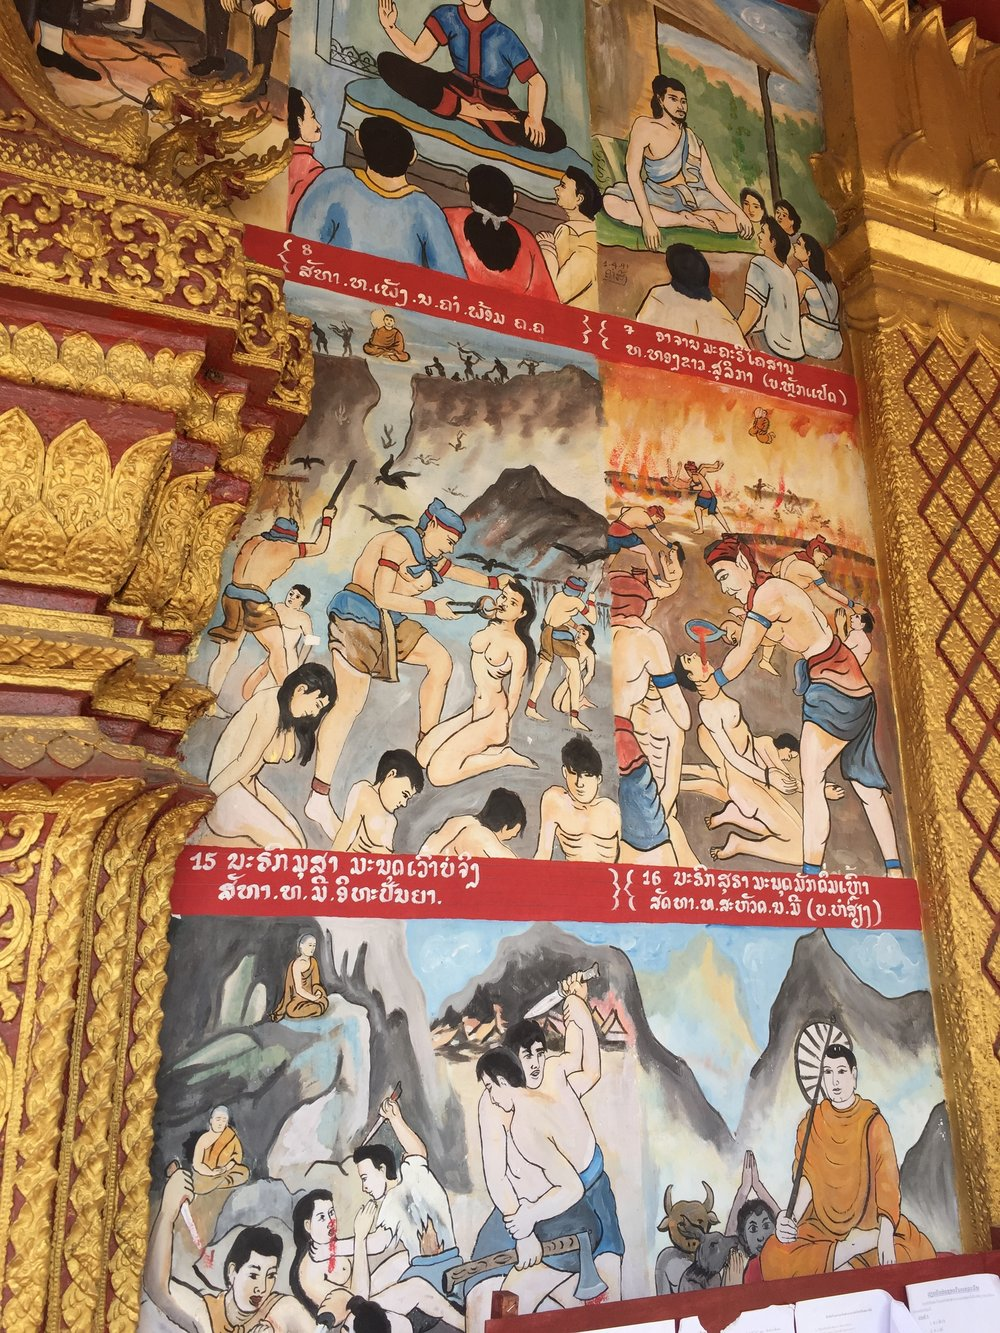 Luang Prabang: yes, there is a hell in Buddhism. It's scary.